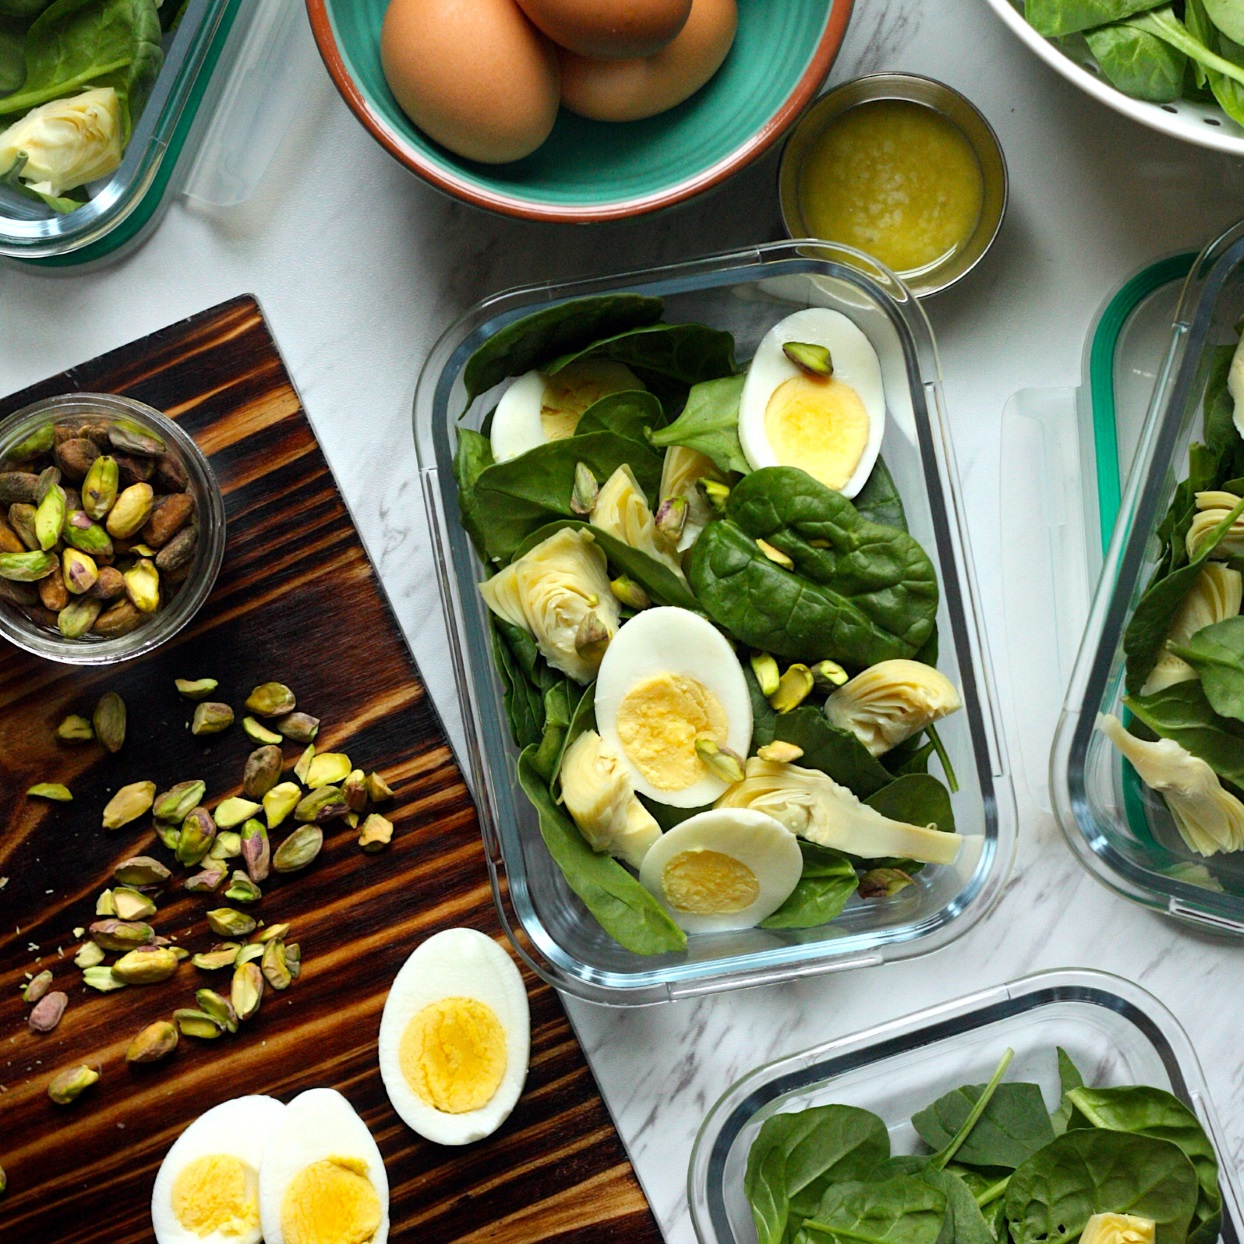 Spinach & Artichoke Salad with Parmesan Vinaigrette